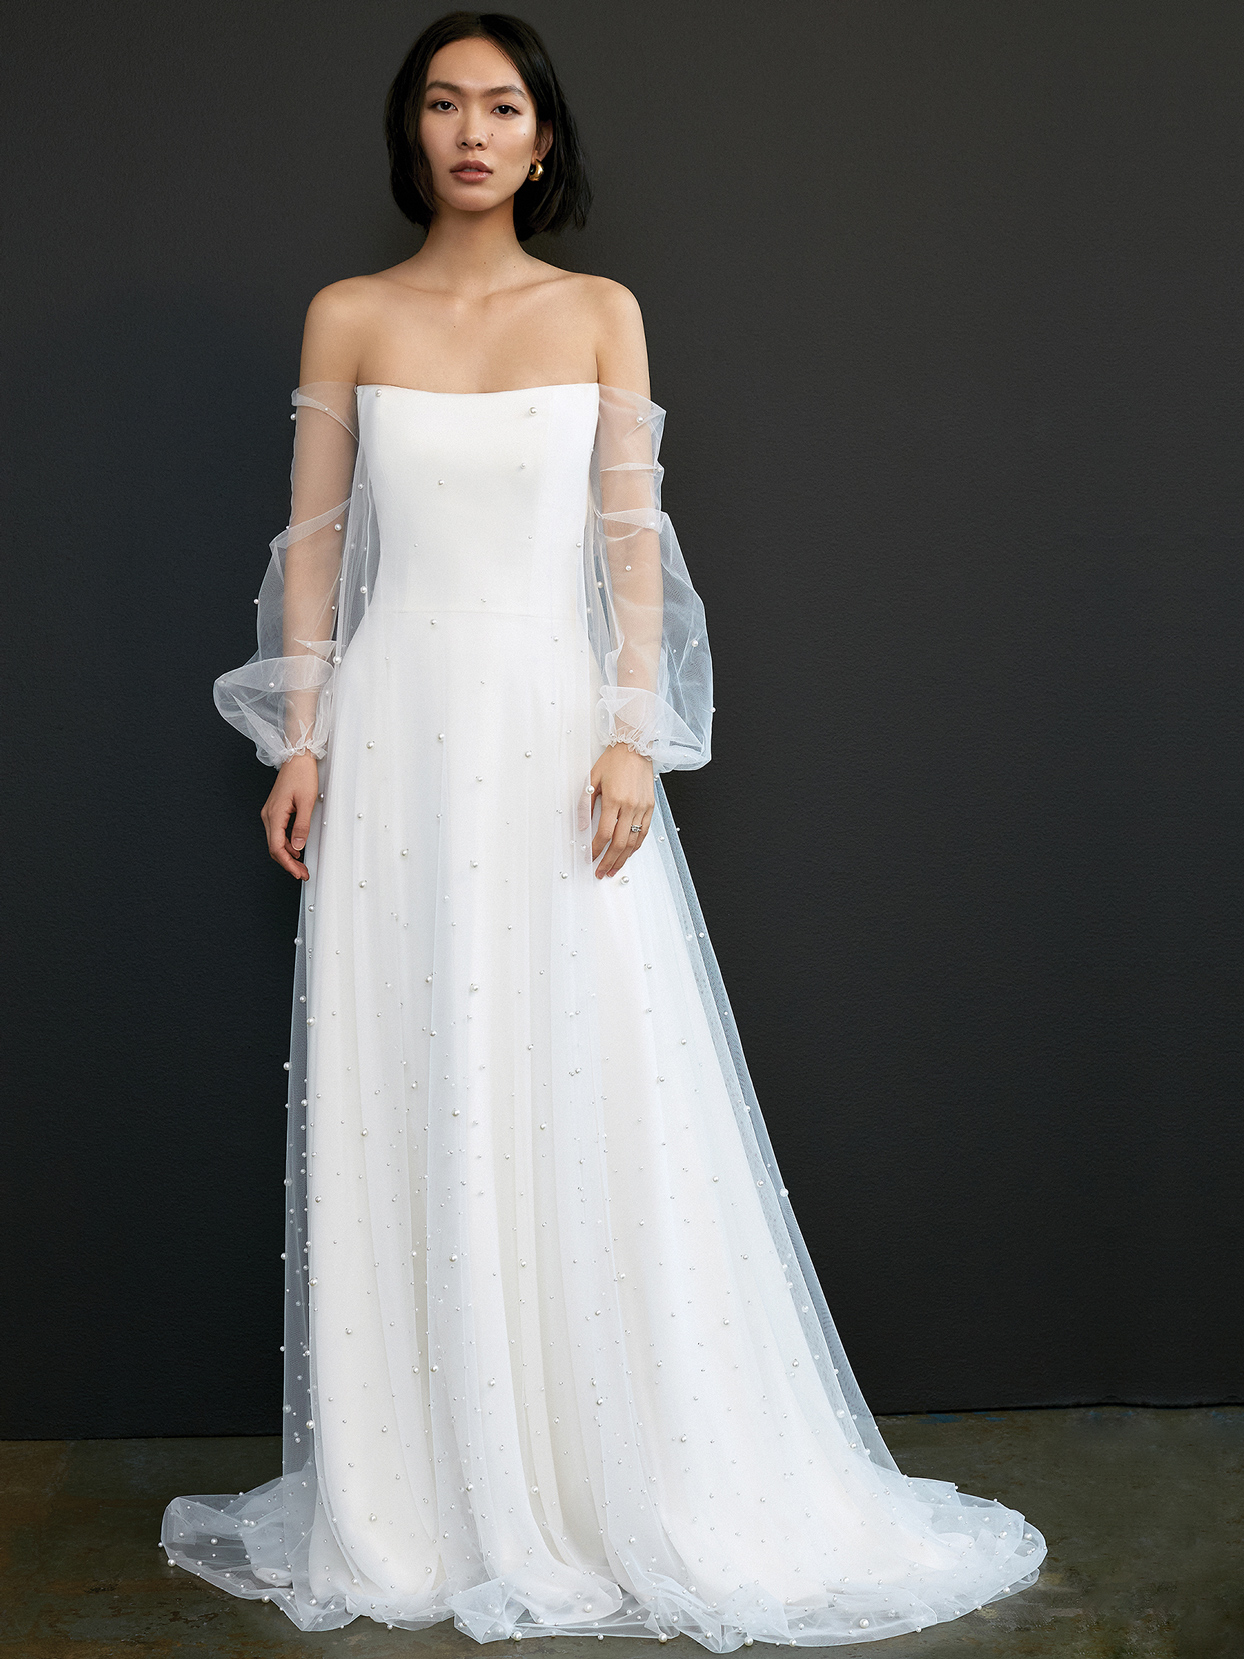 savannah miller tulle long sleeve beaded wedding dress spring 2021